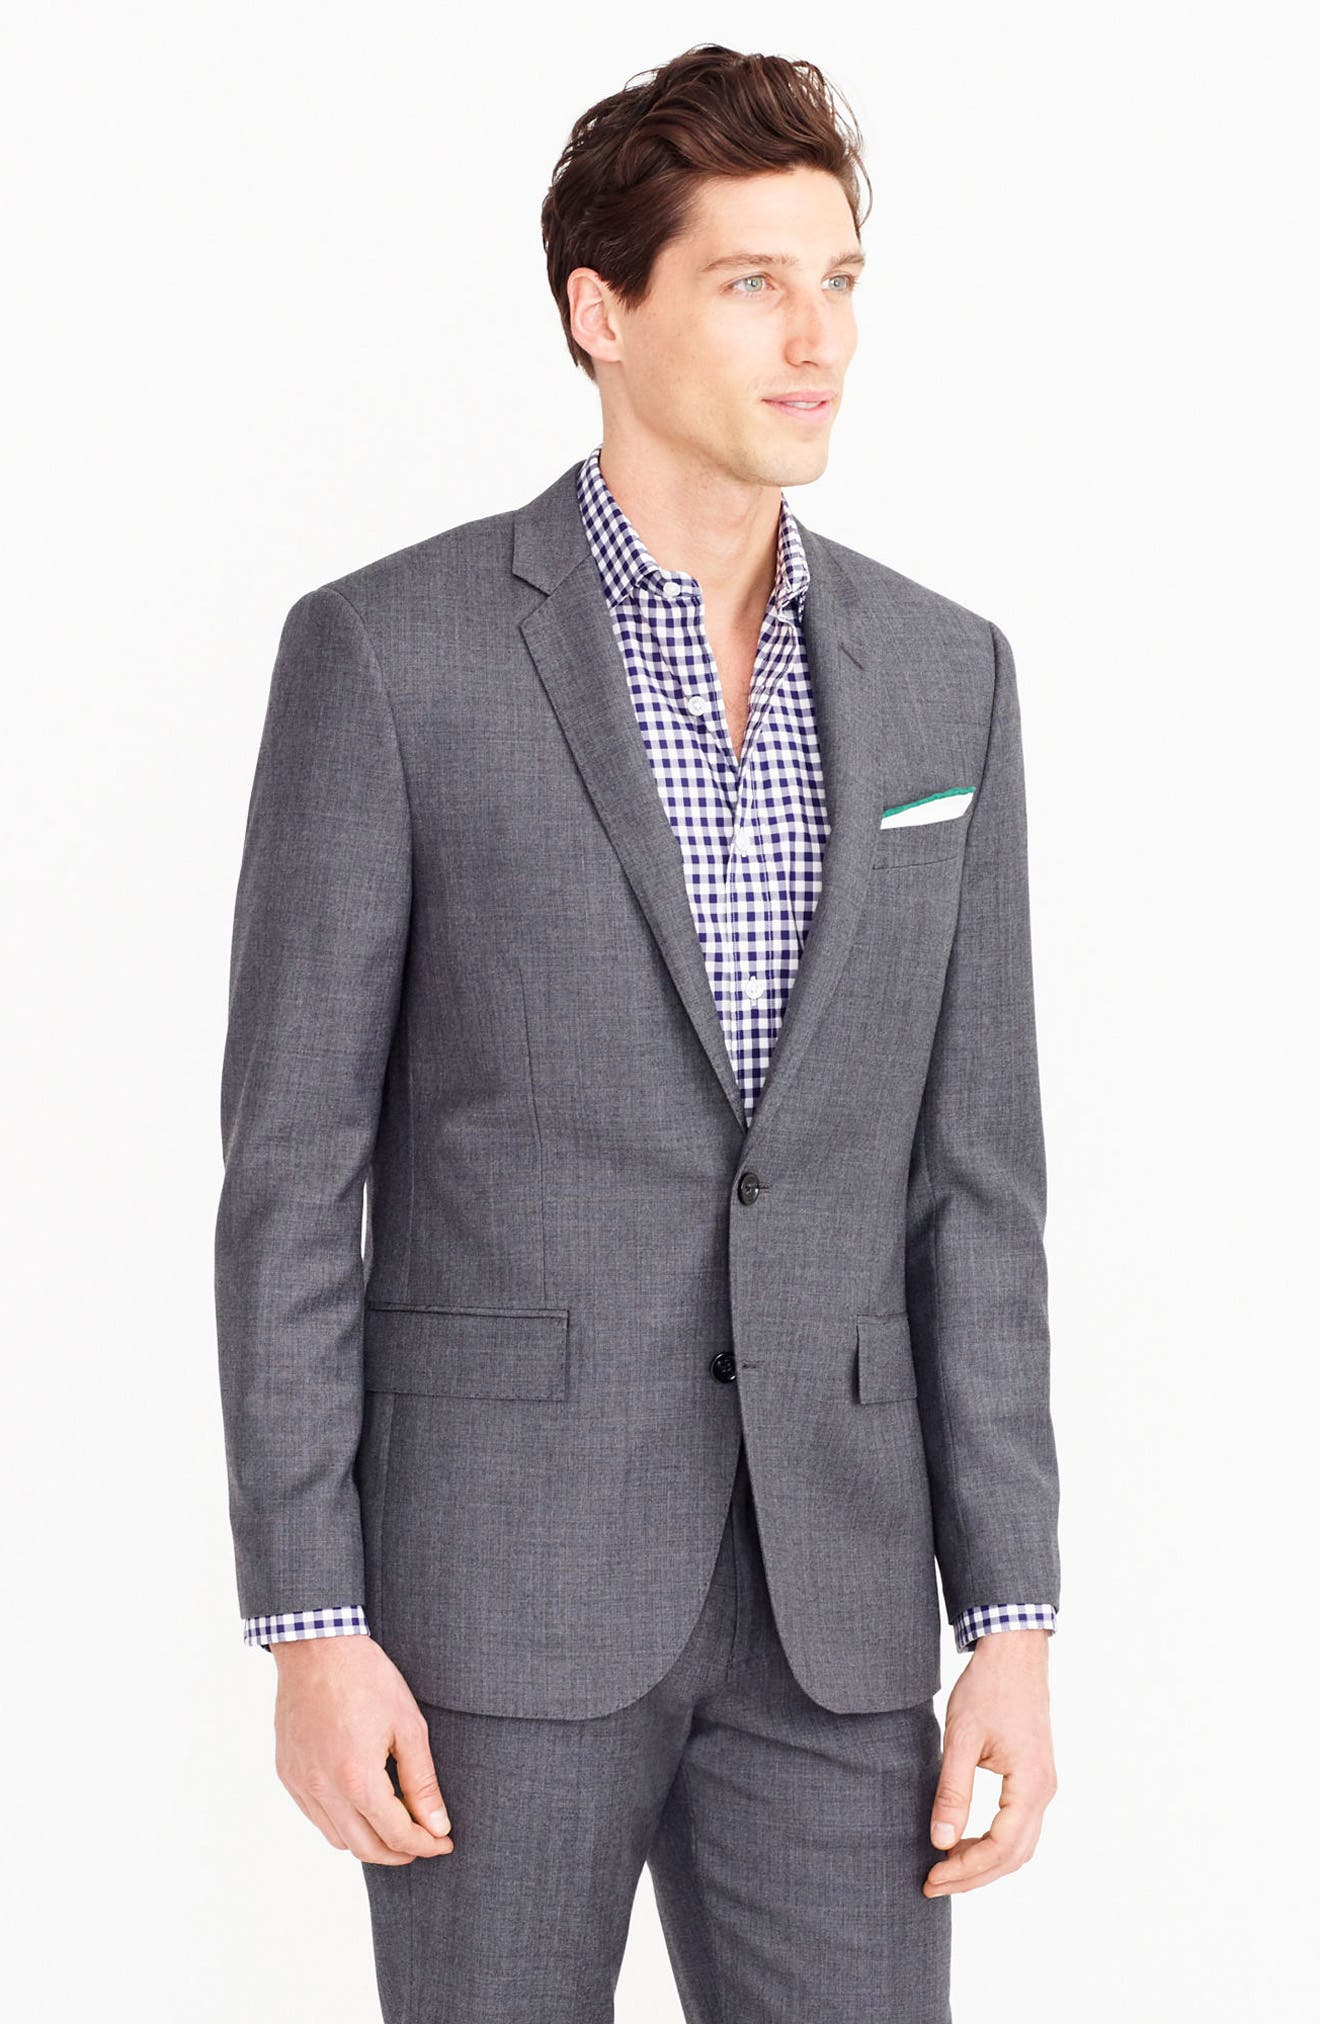 Ludlow Trim Fit Solid Wool Sport Coat,                             Alternate thumbnail 11, color,                             020